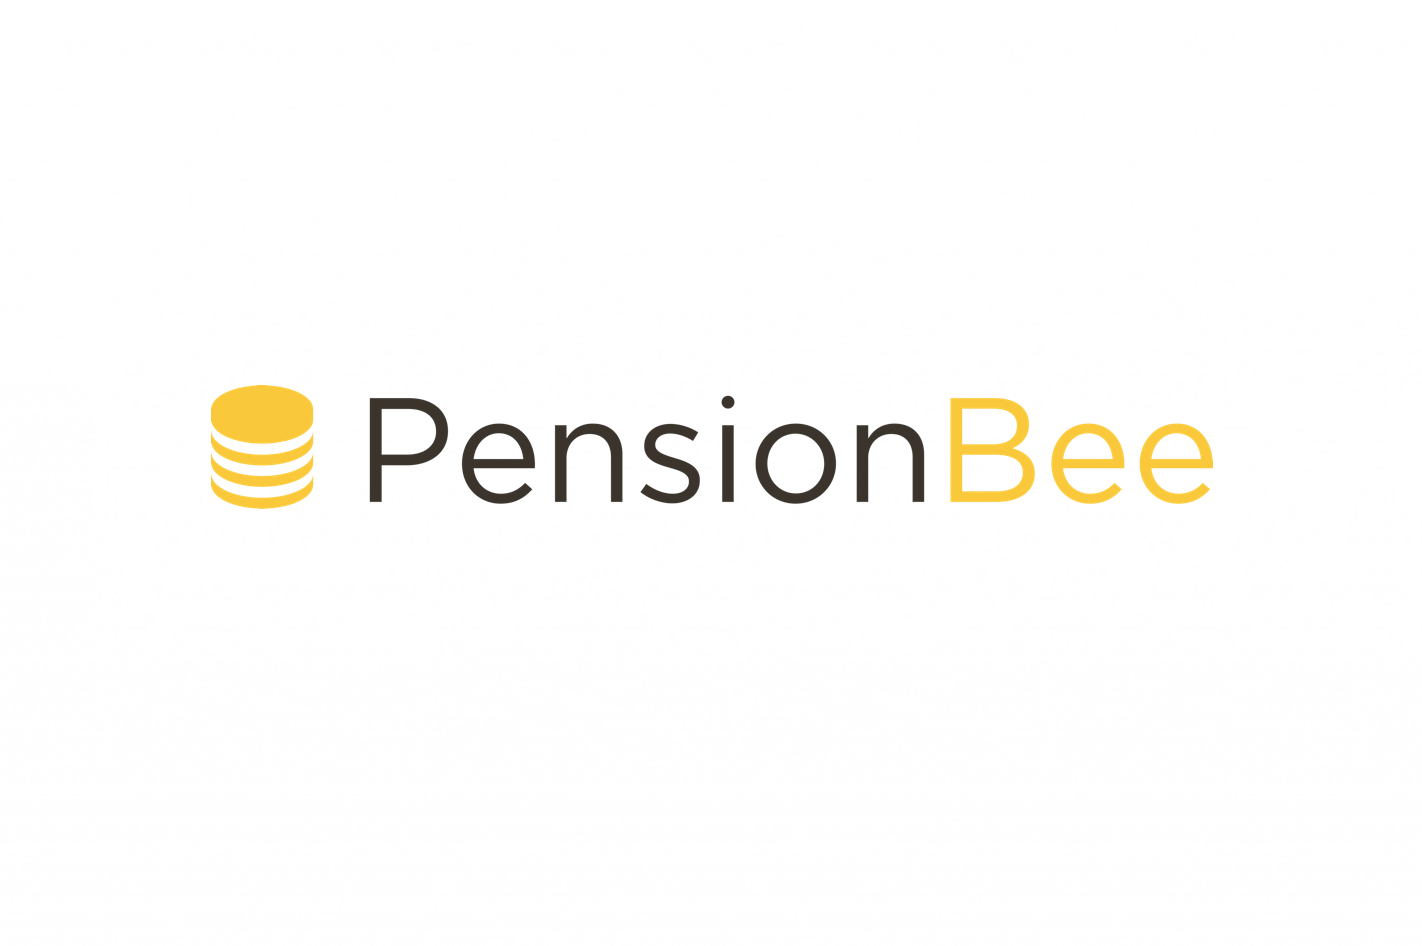 pension-bee